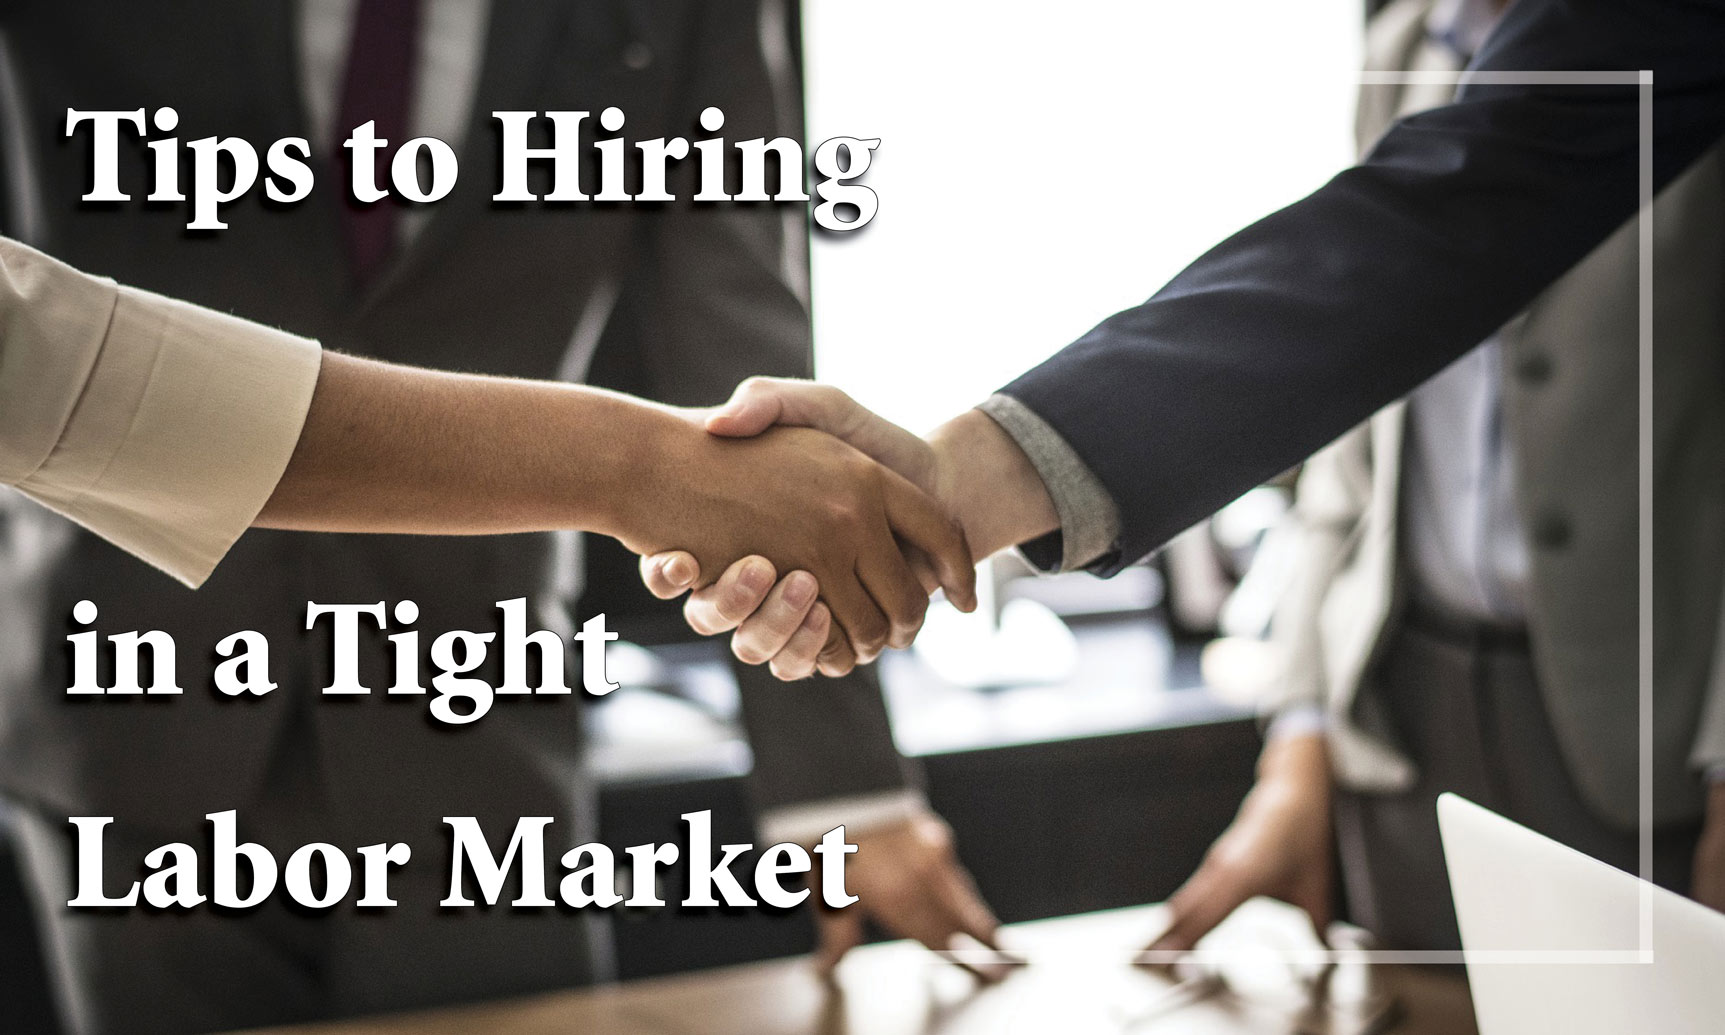 Tips to Hiring in a Tight Labor Market